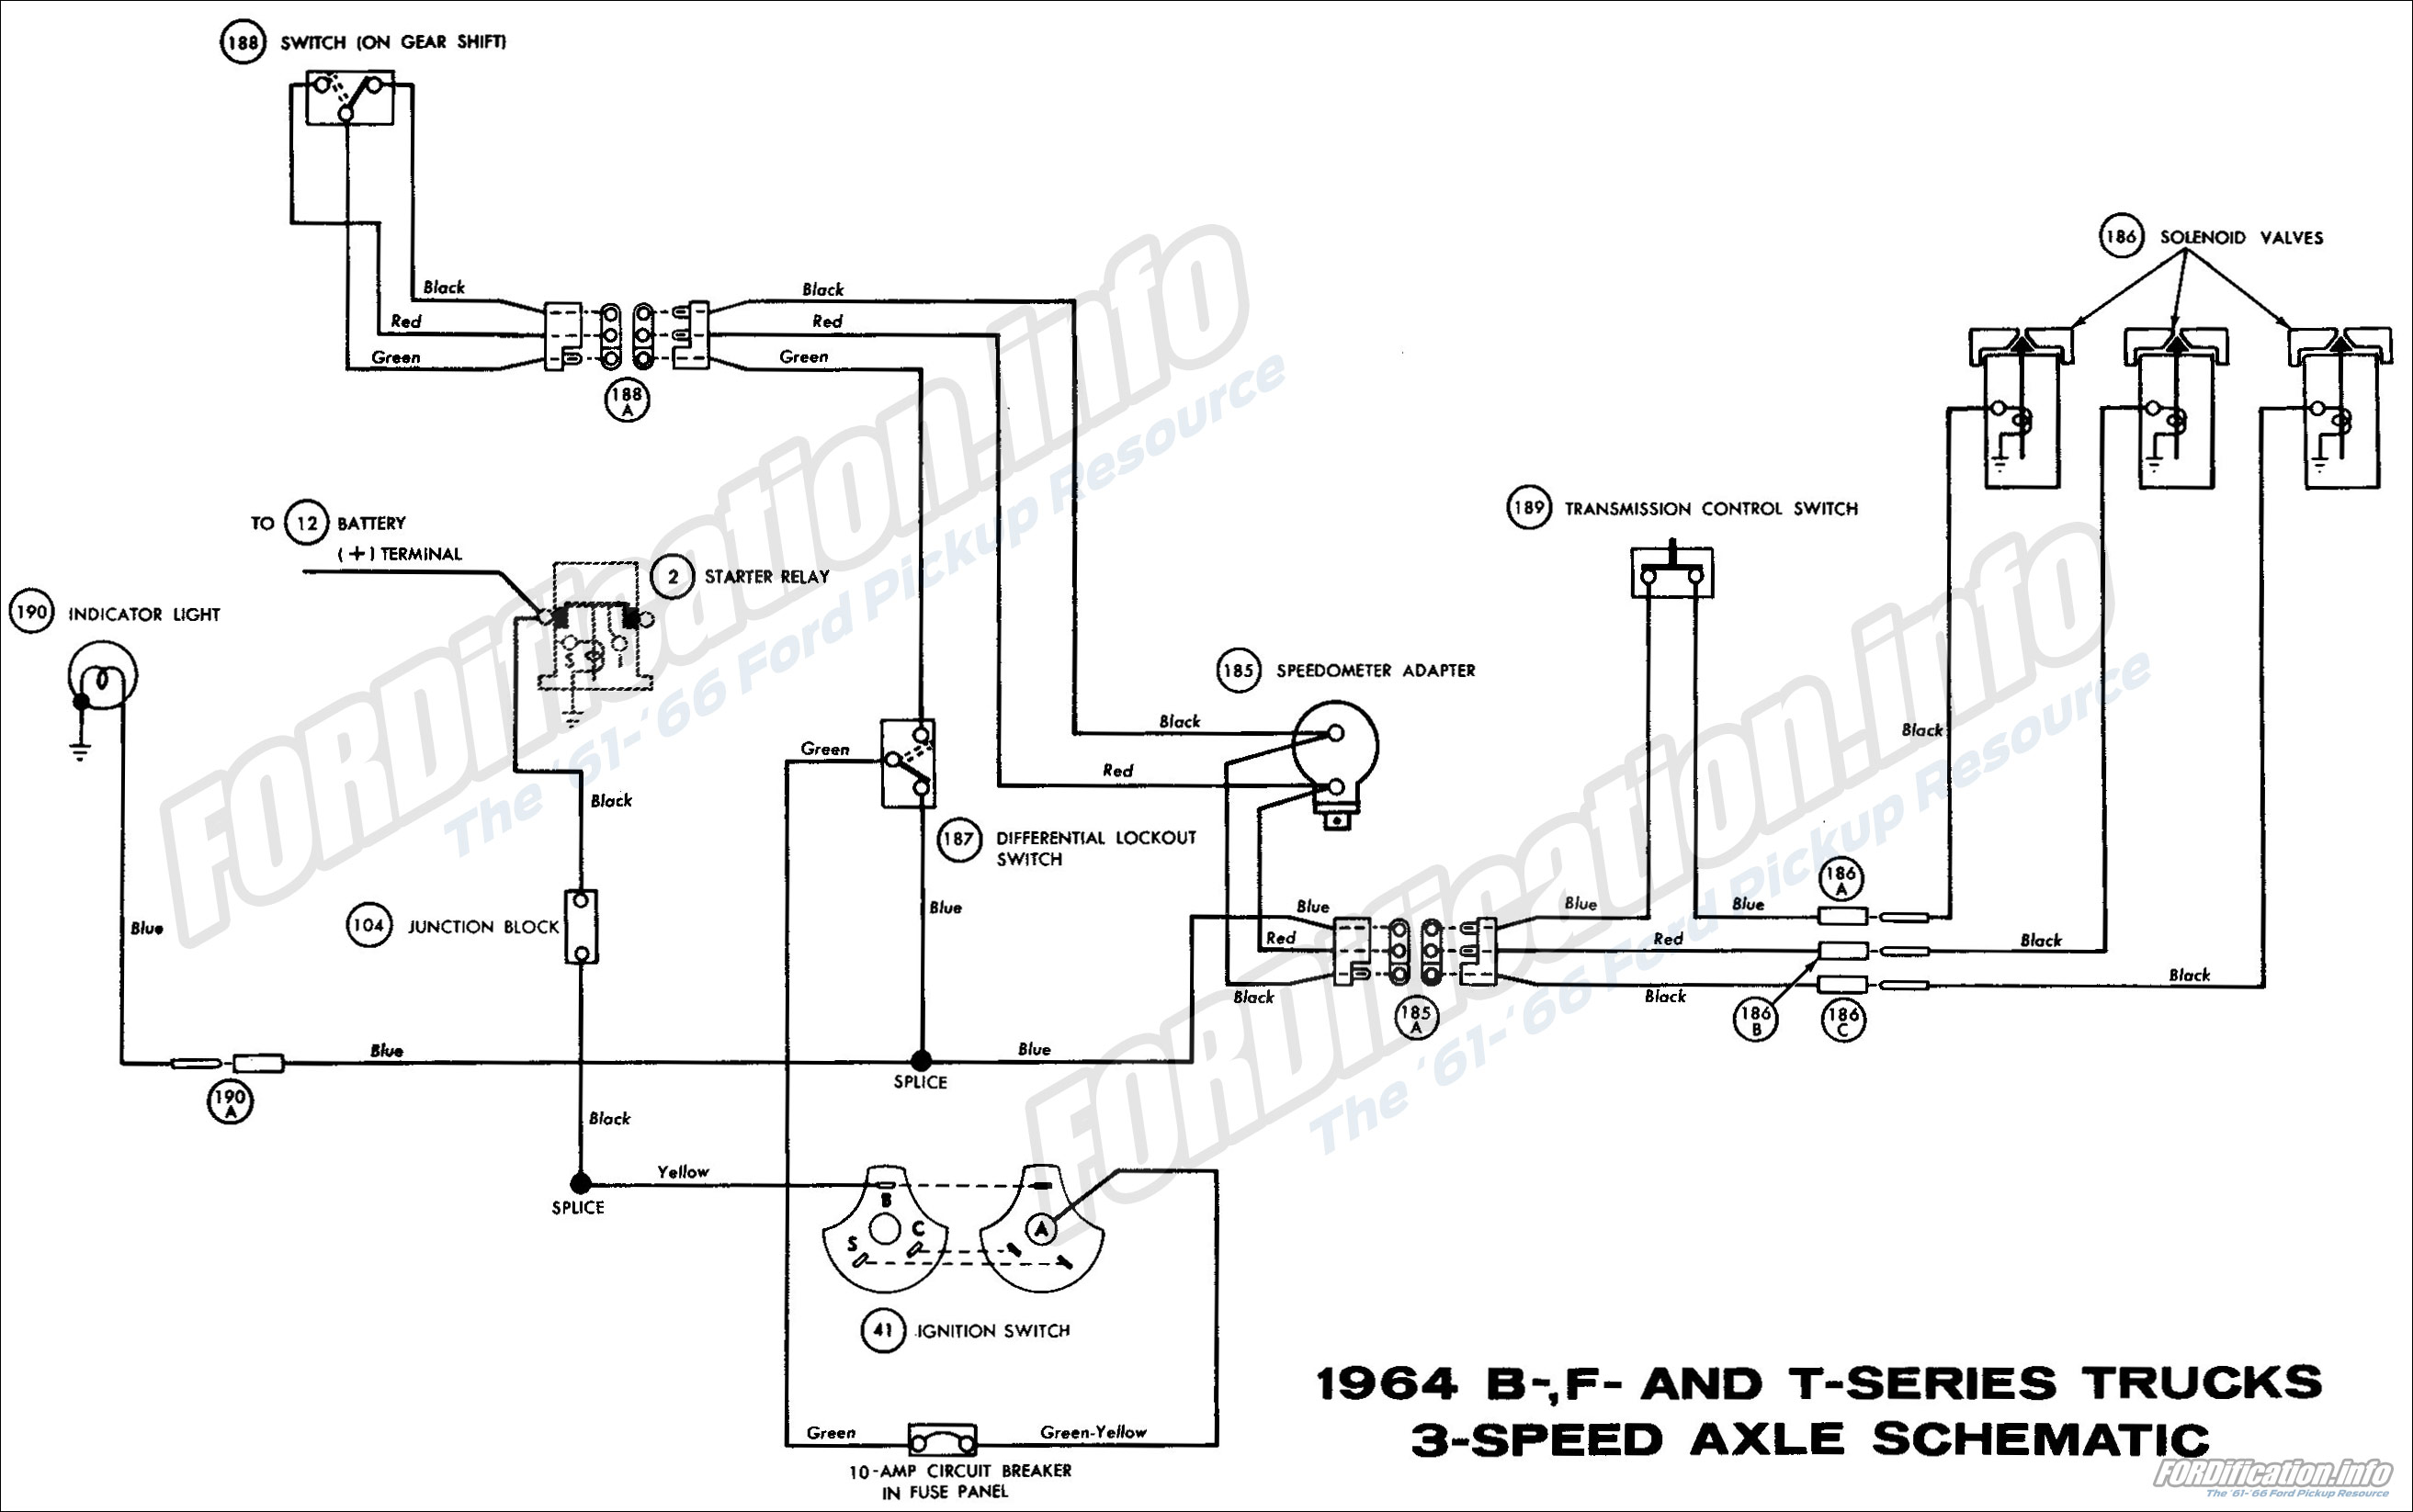 1964_19 eaton wiring diagram haldex abs wiring diagram \u2022 wiring diagrams fordification wiring diagram at gsmportal.co